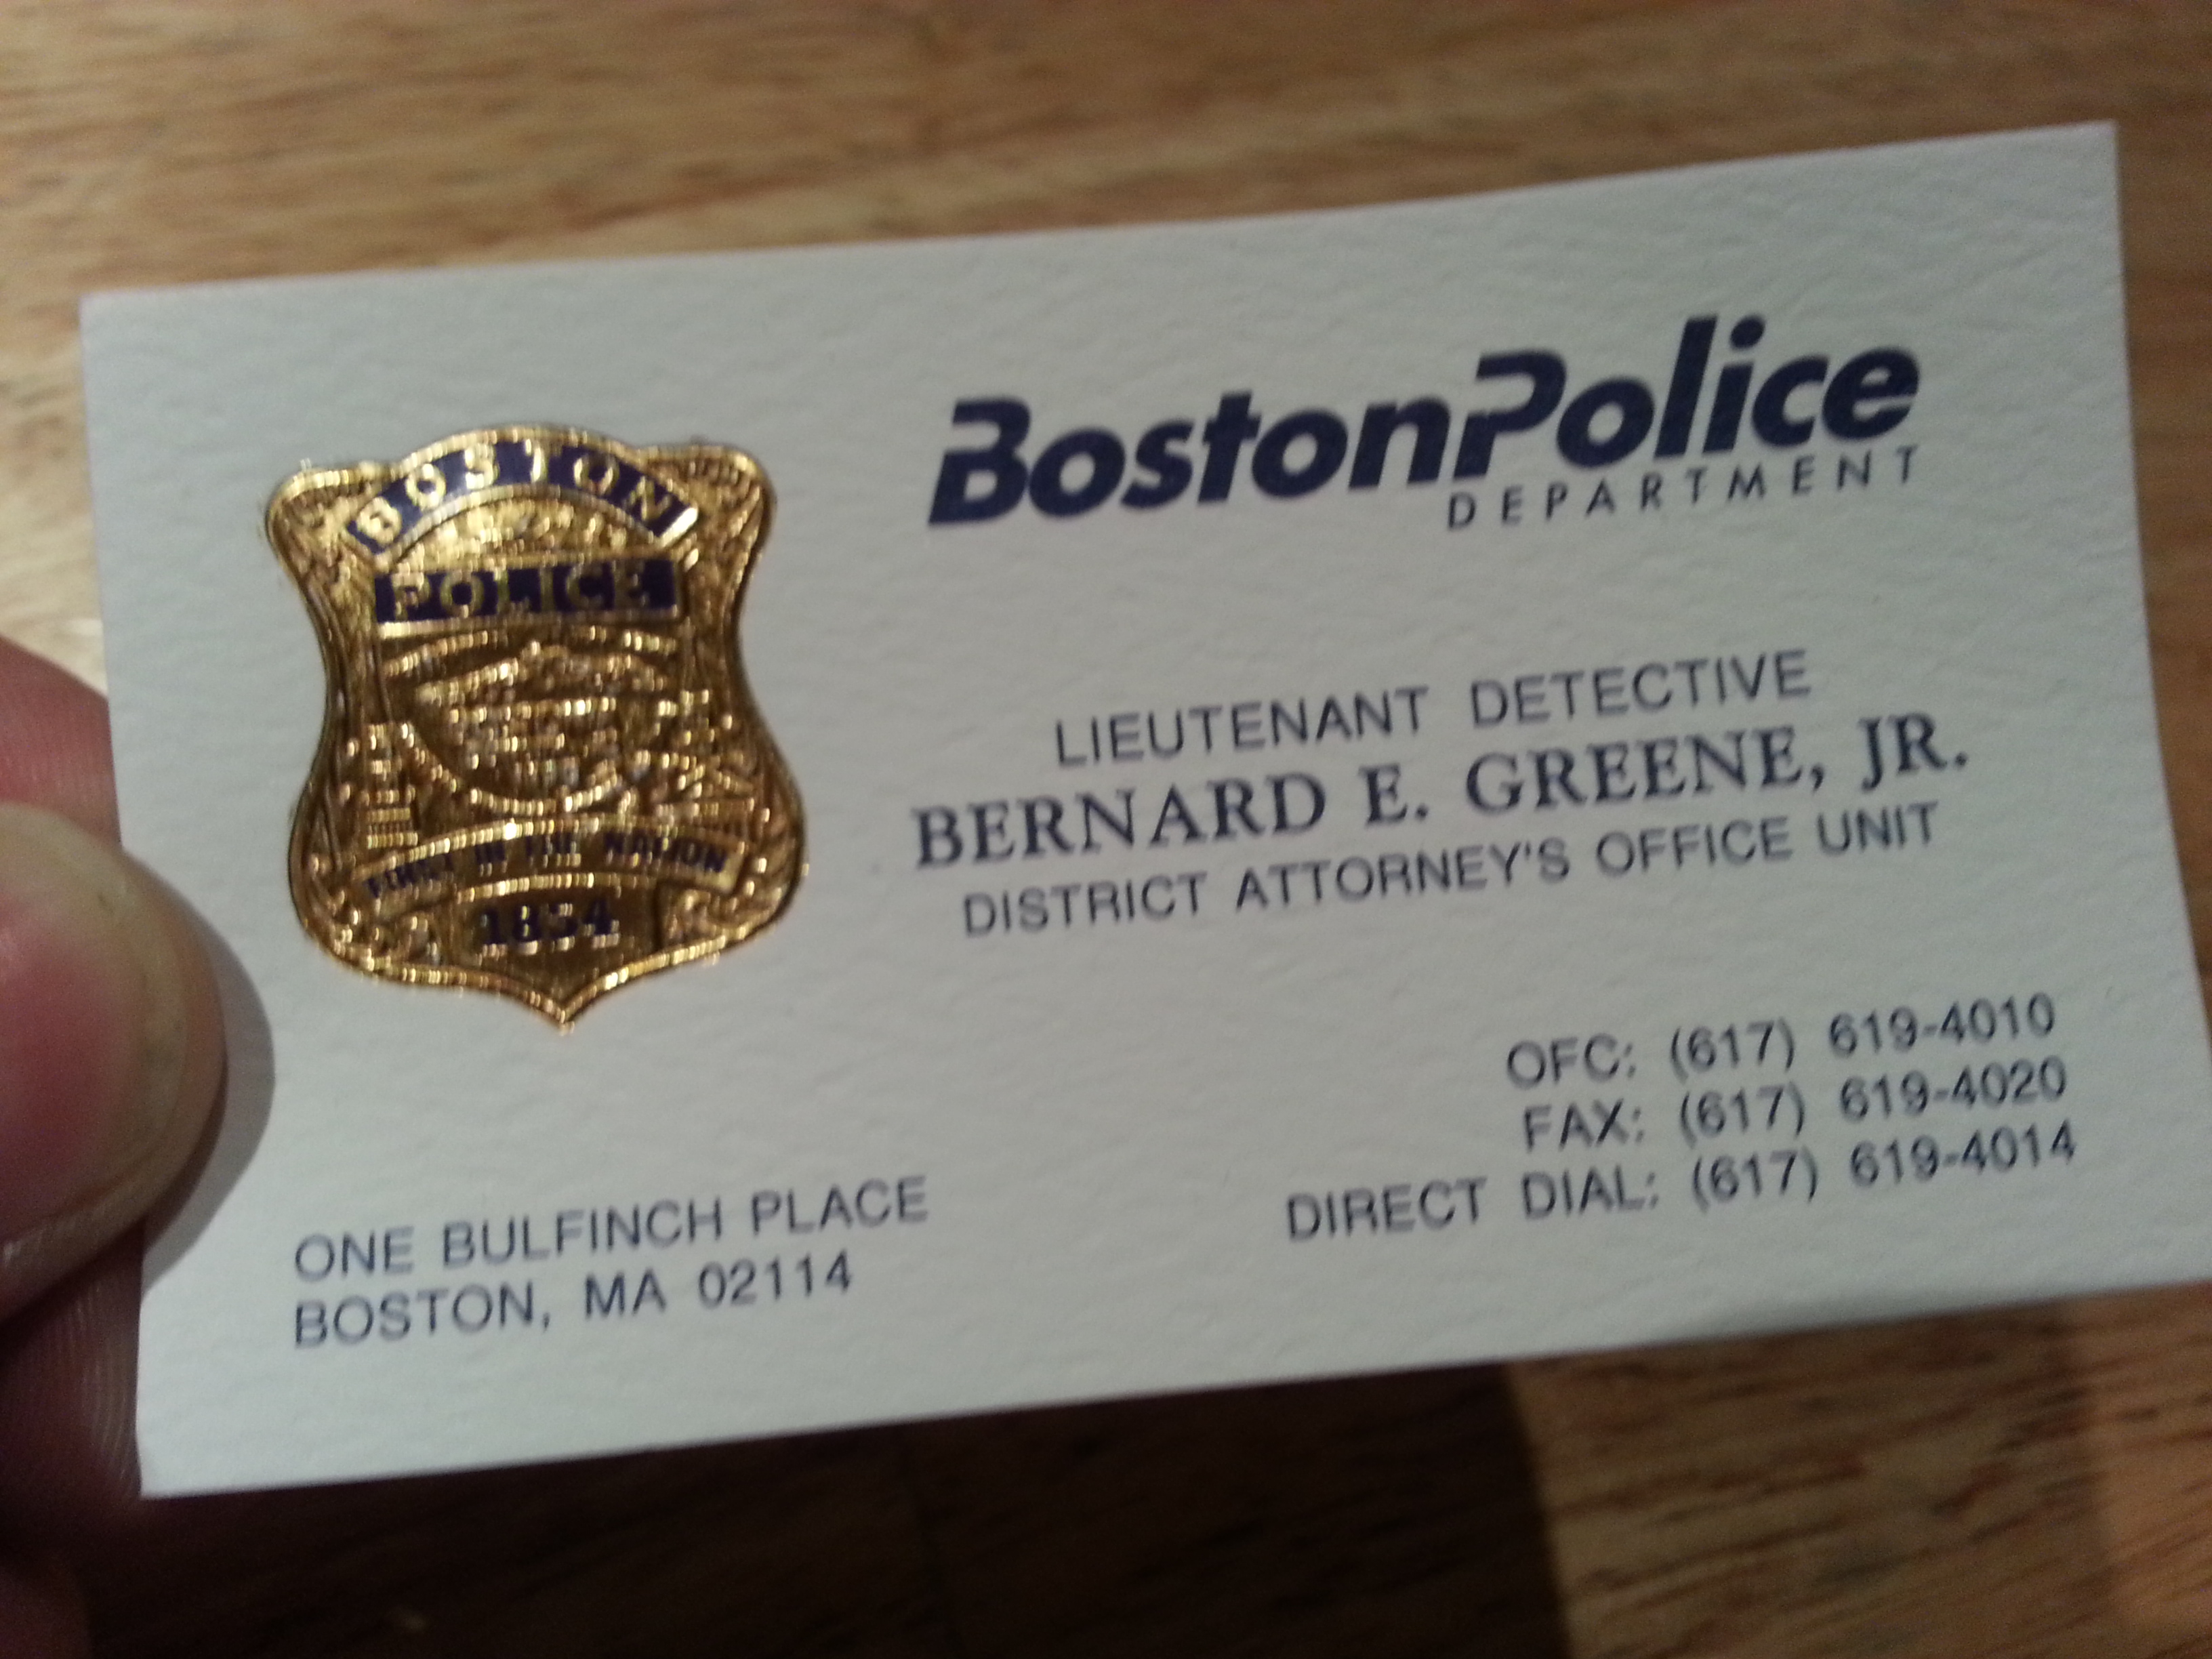 Lt. Det. Greene's business card